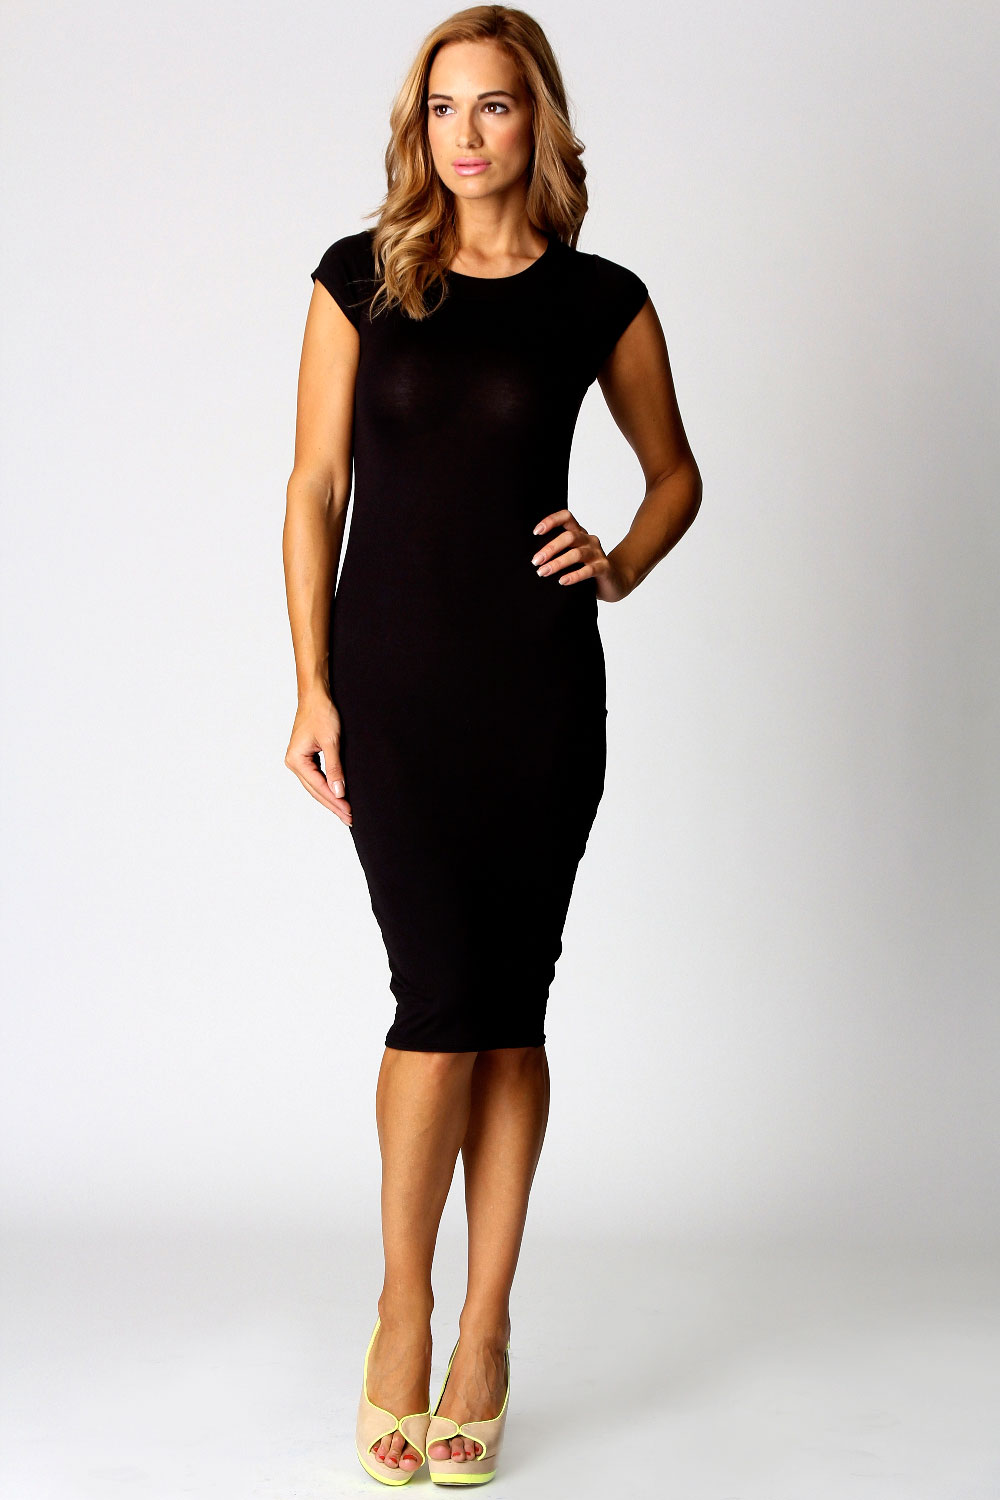 Ladies Black Dresses